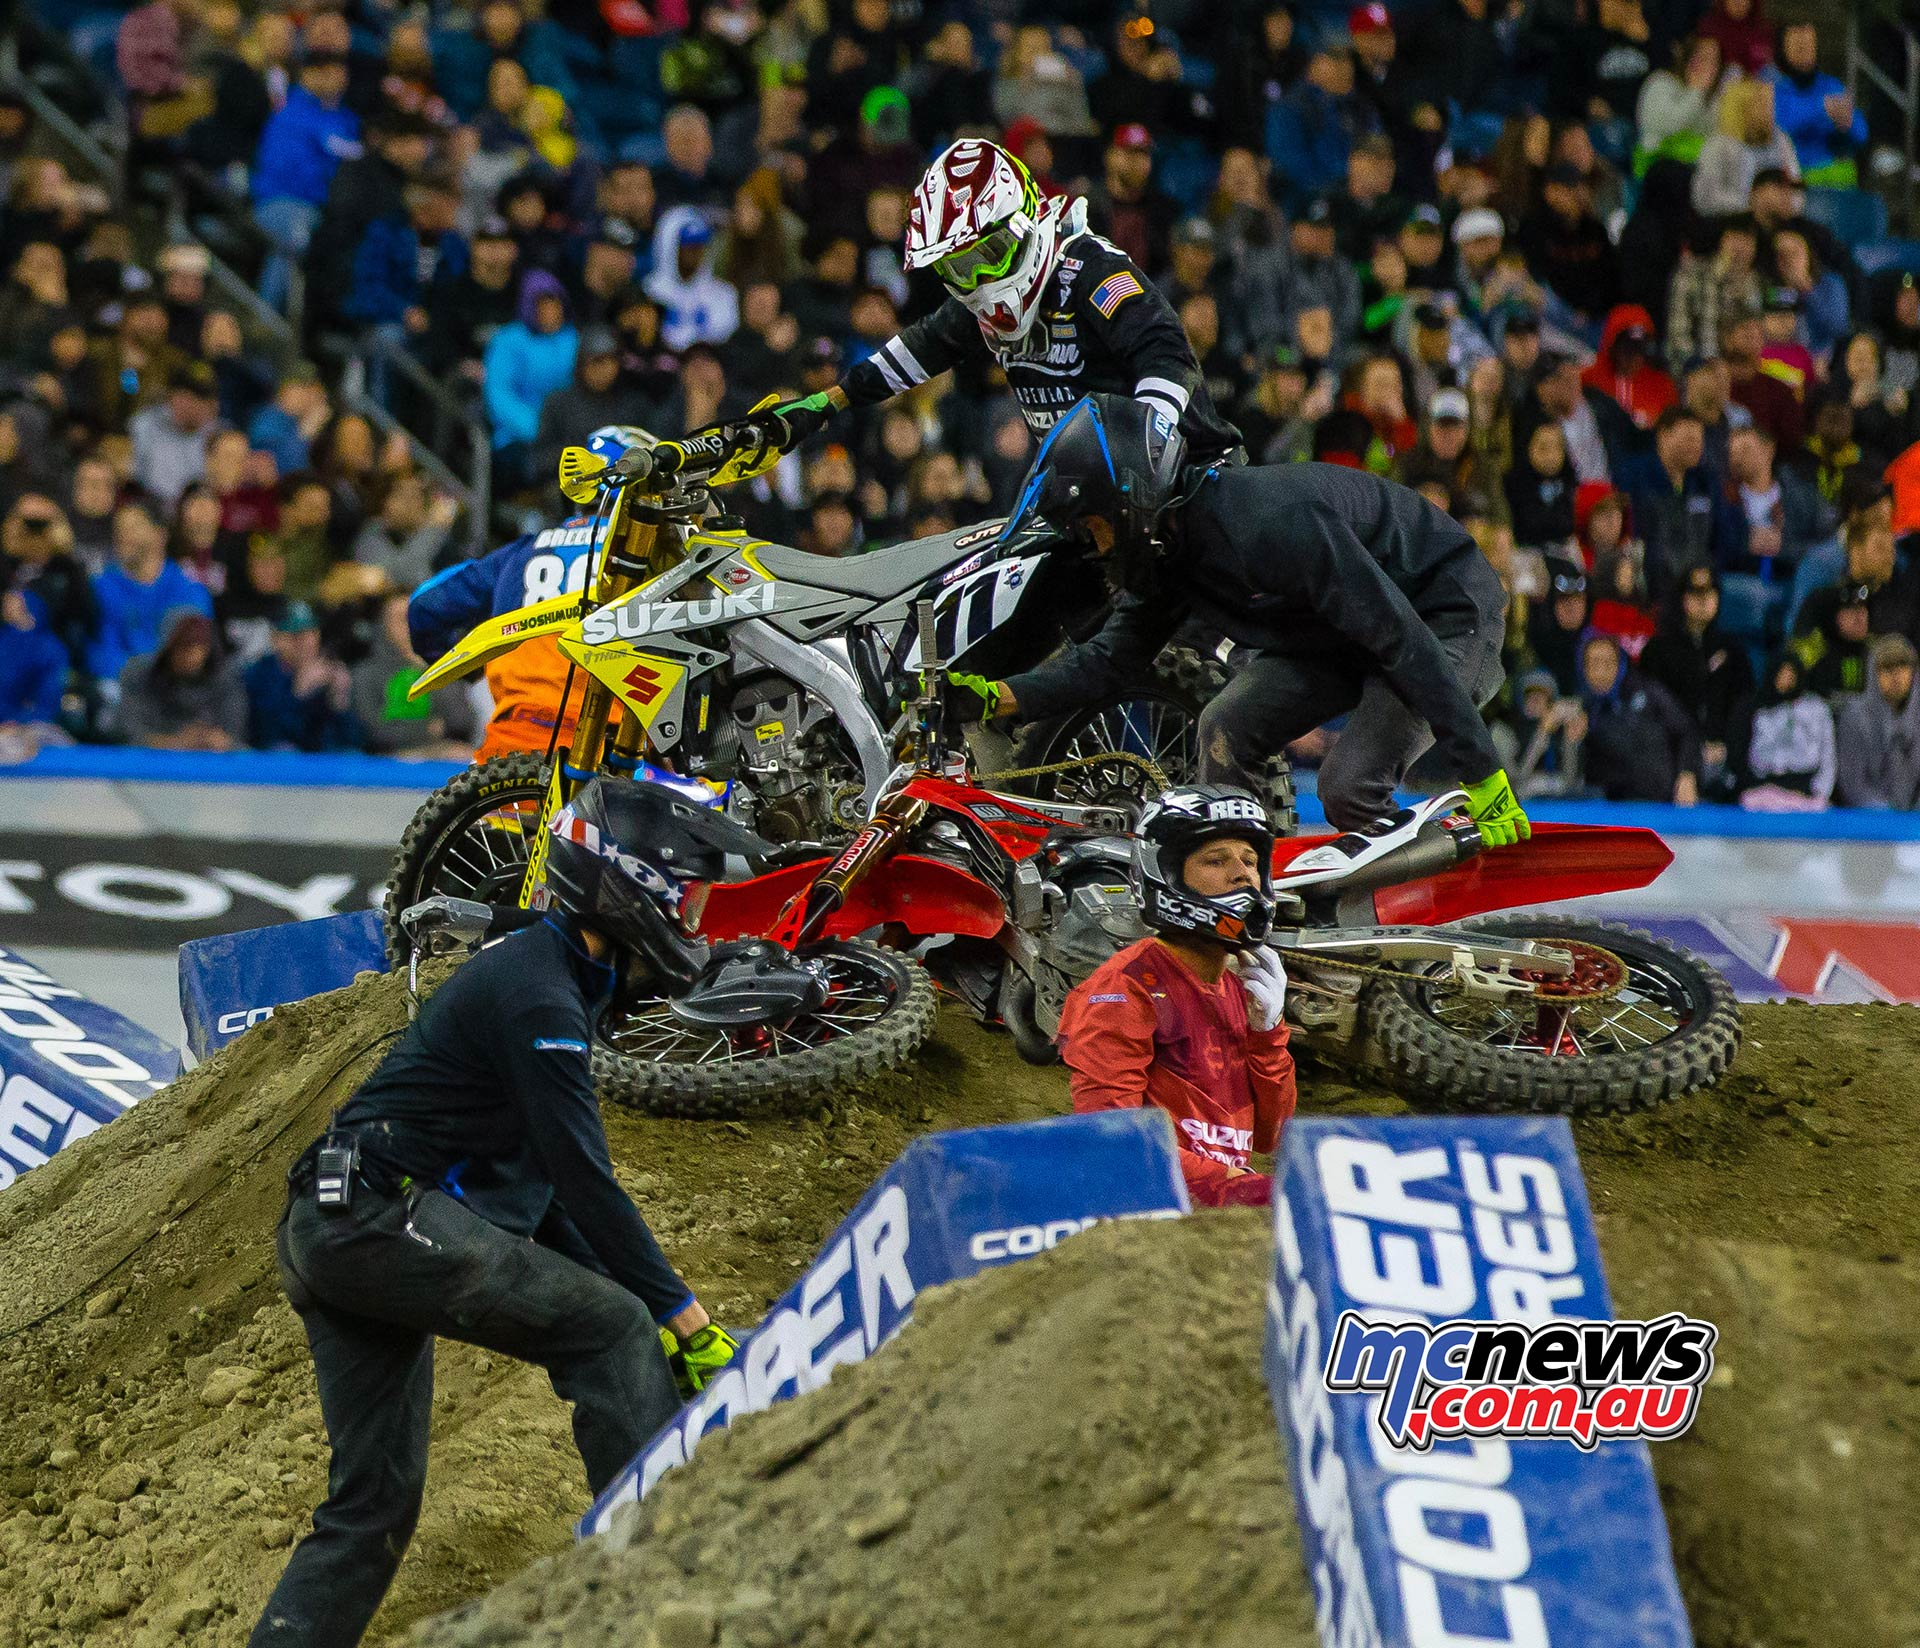 AMA SX Rnd Crash Reed Multiple JK SX Seattle